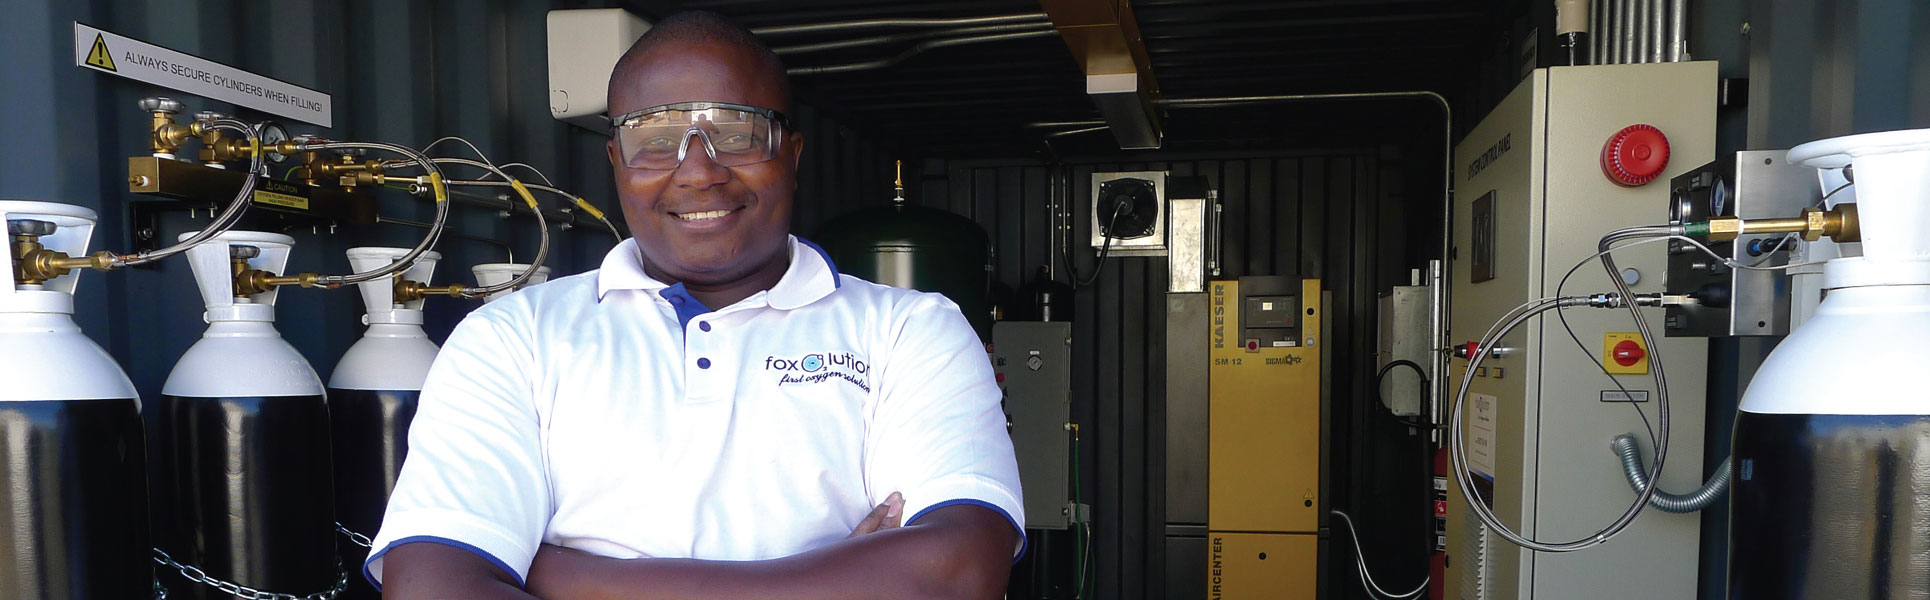 Oxygen Nitrogen Generators - Foxolution Systems Engineering CC